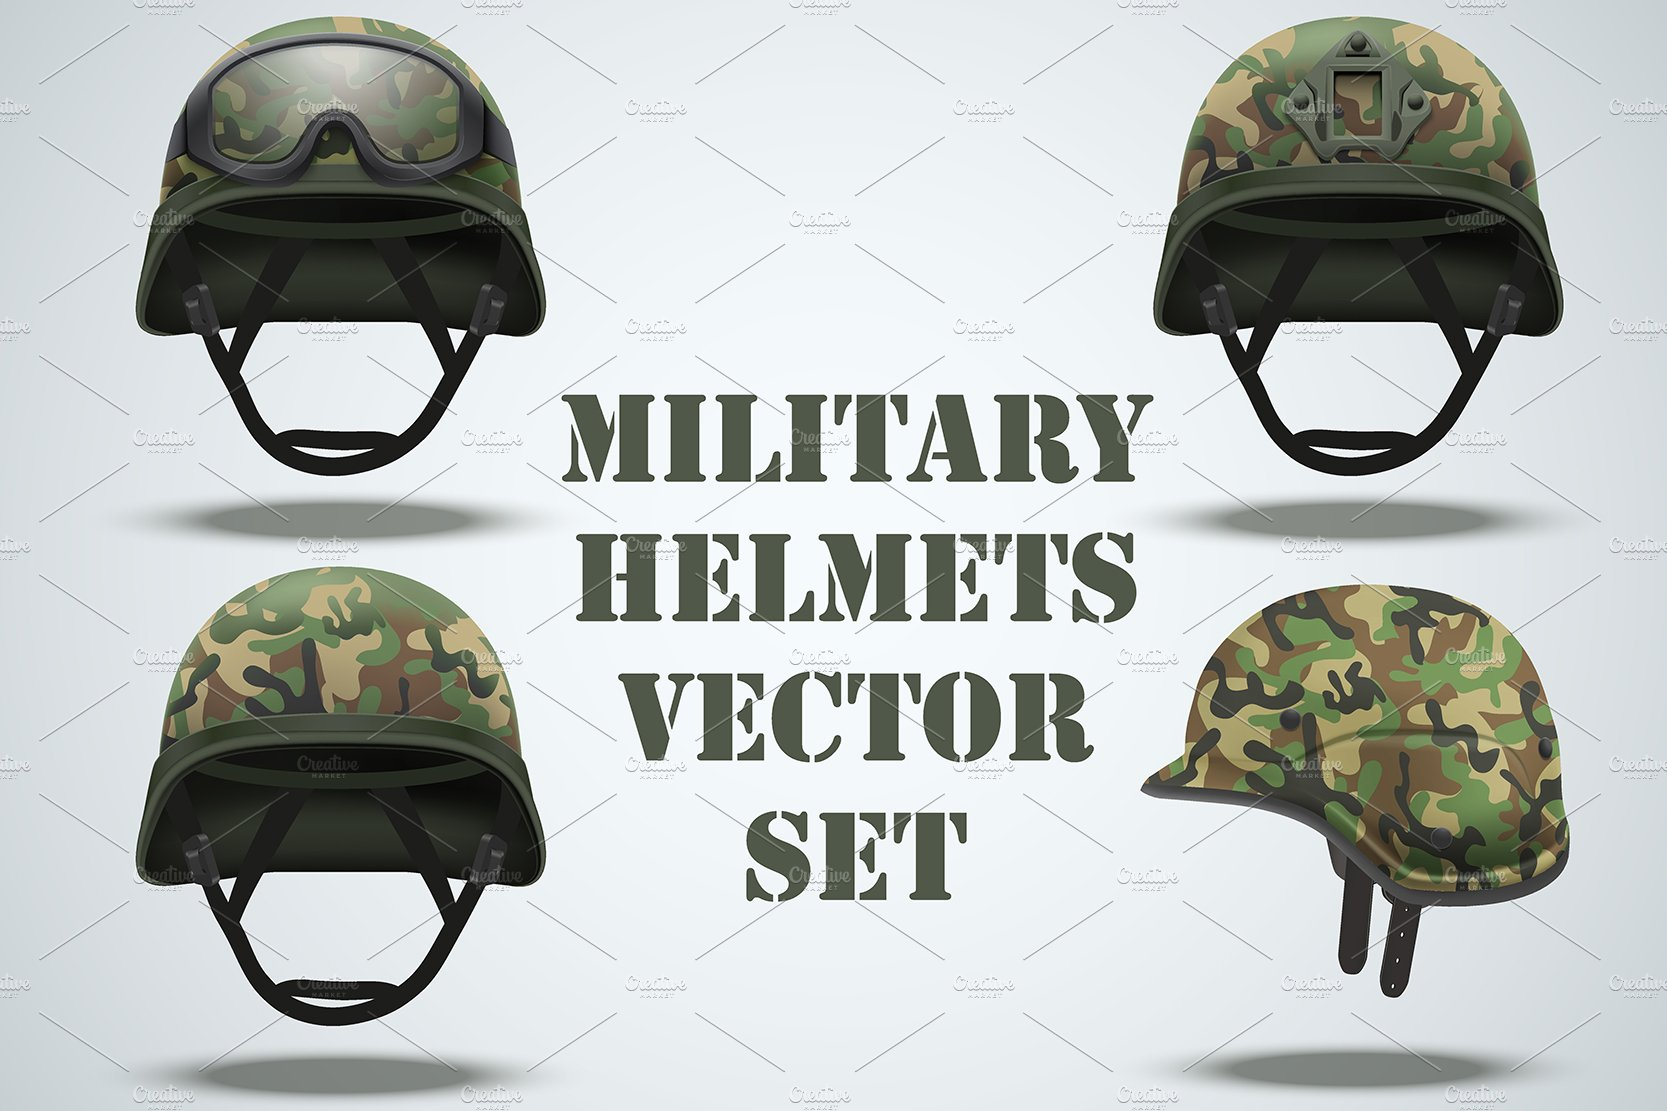 Air, Army, and Helmet Graphics, Designs & Templates